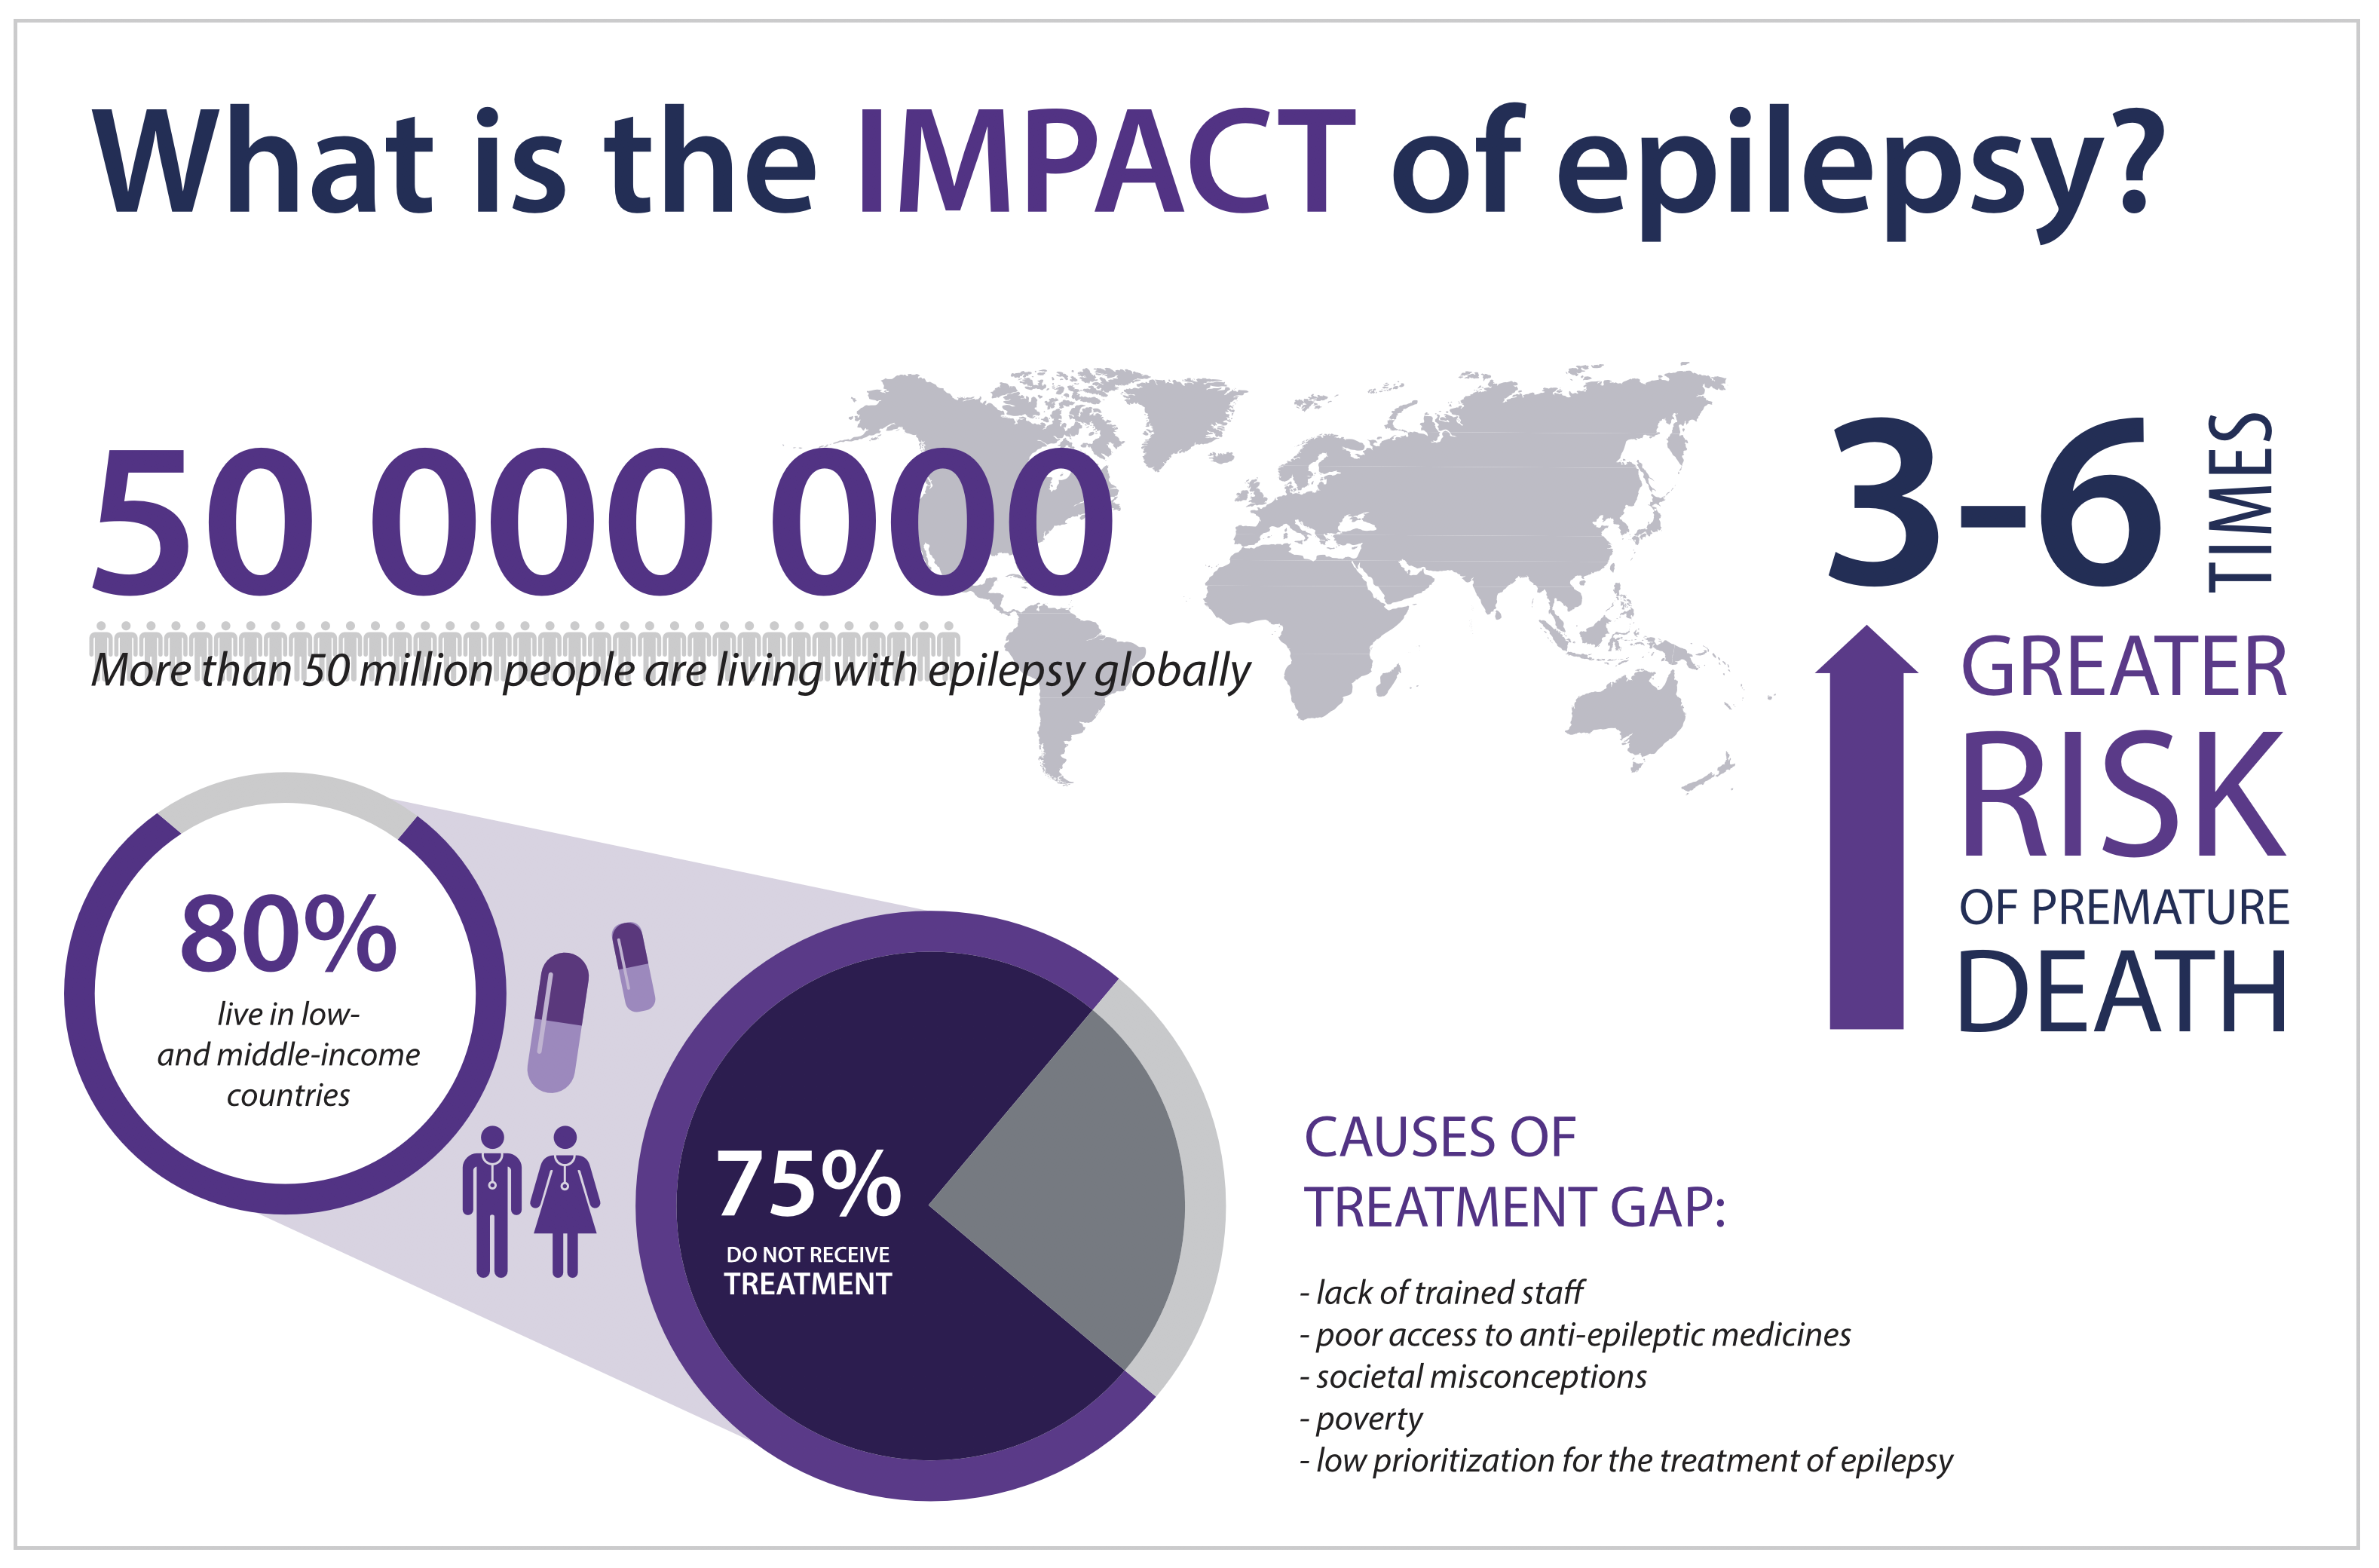 epilepsy research, university of nebraska